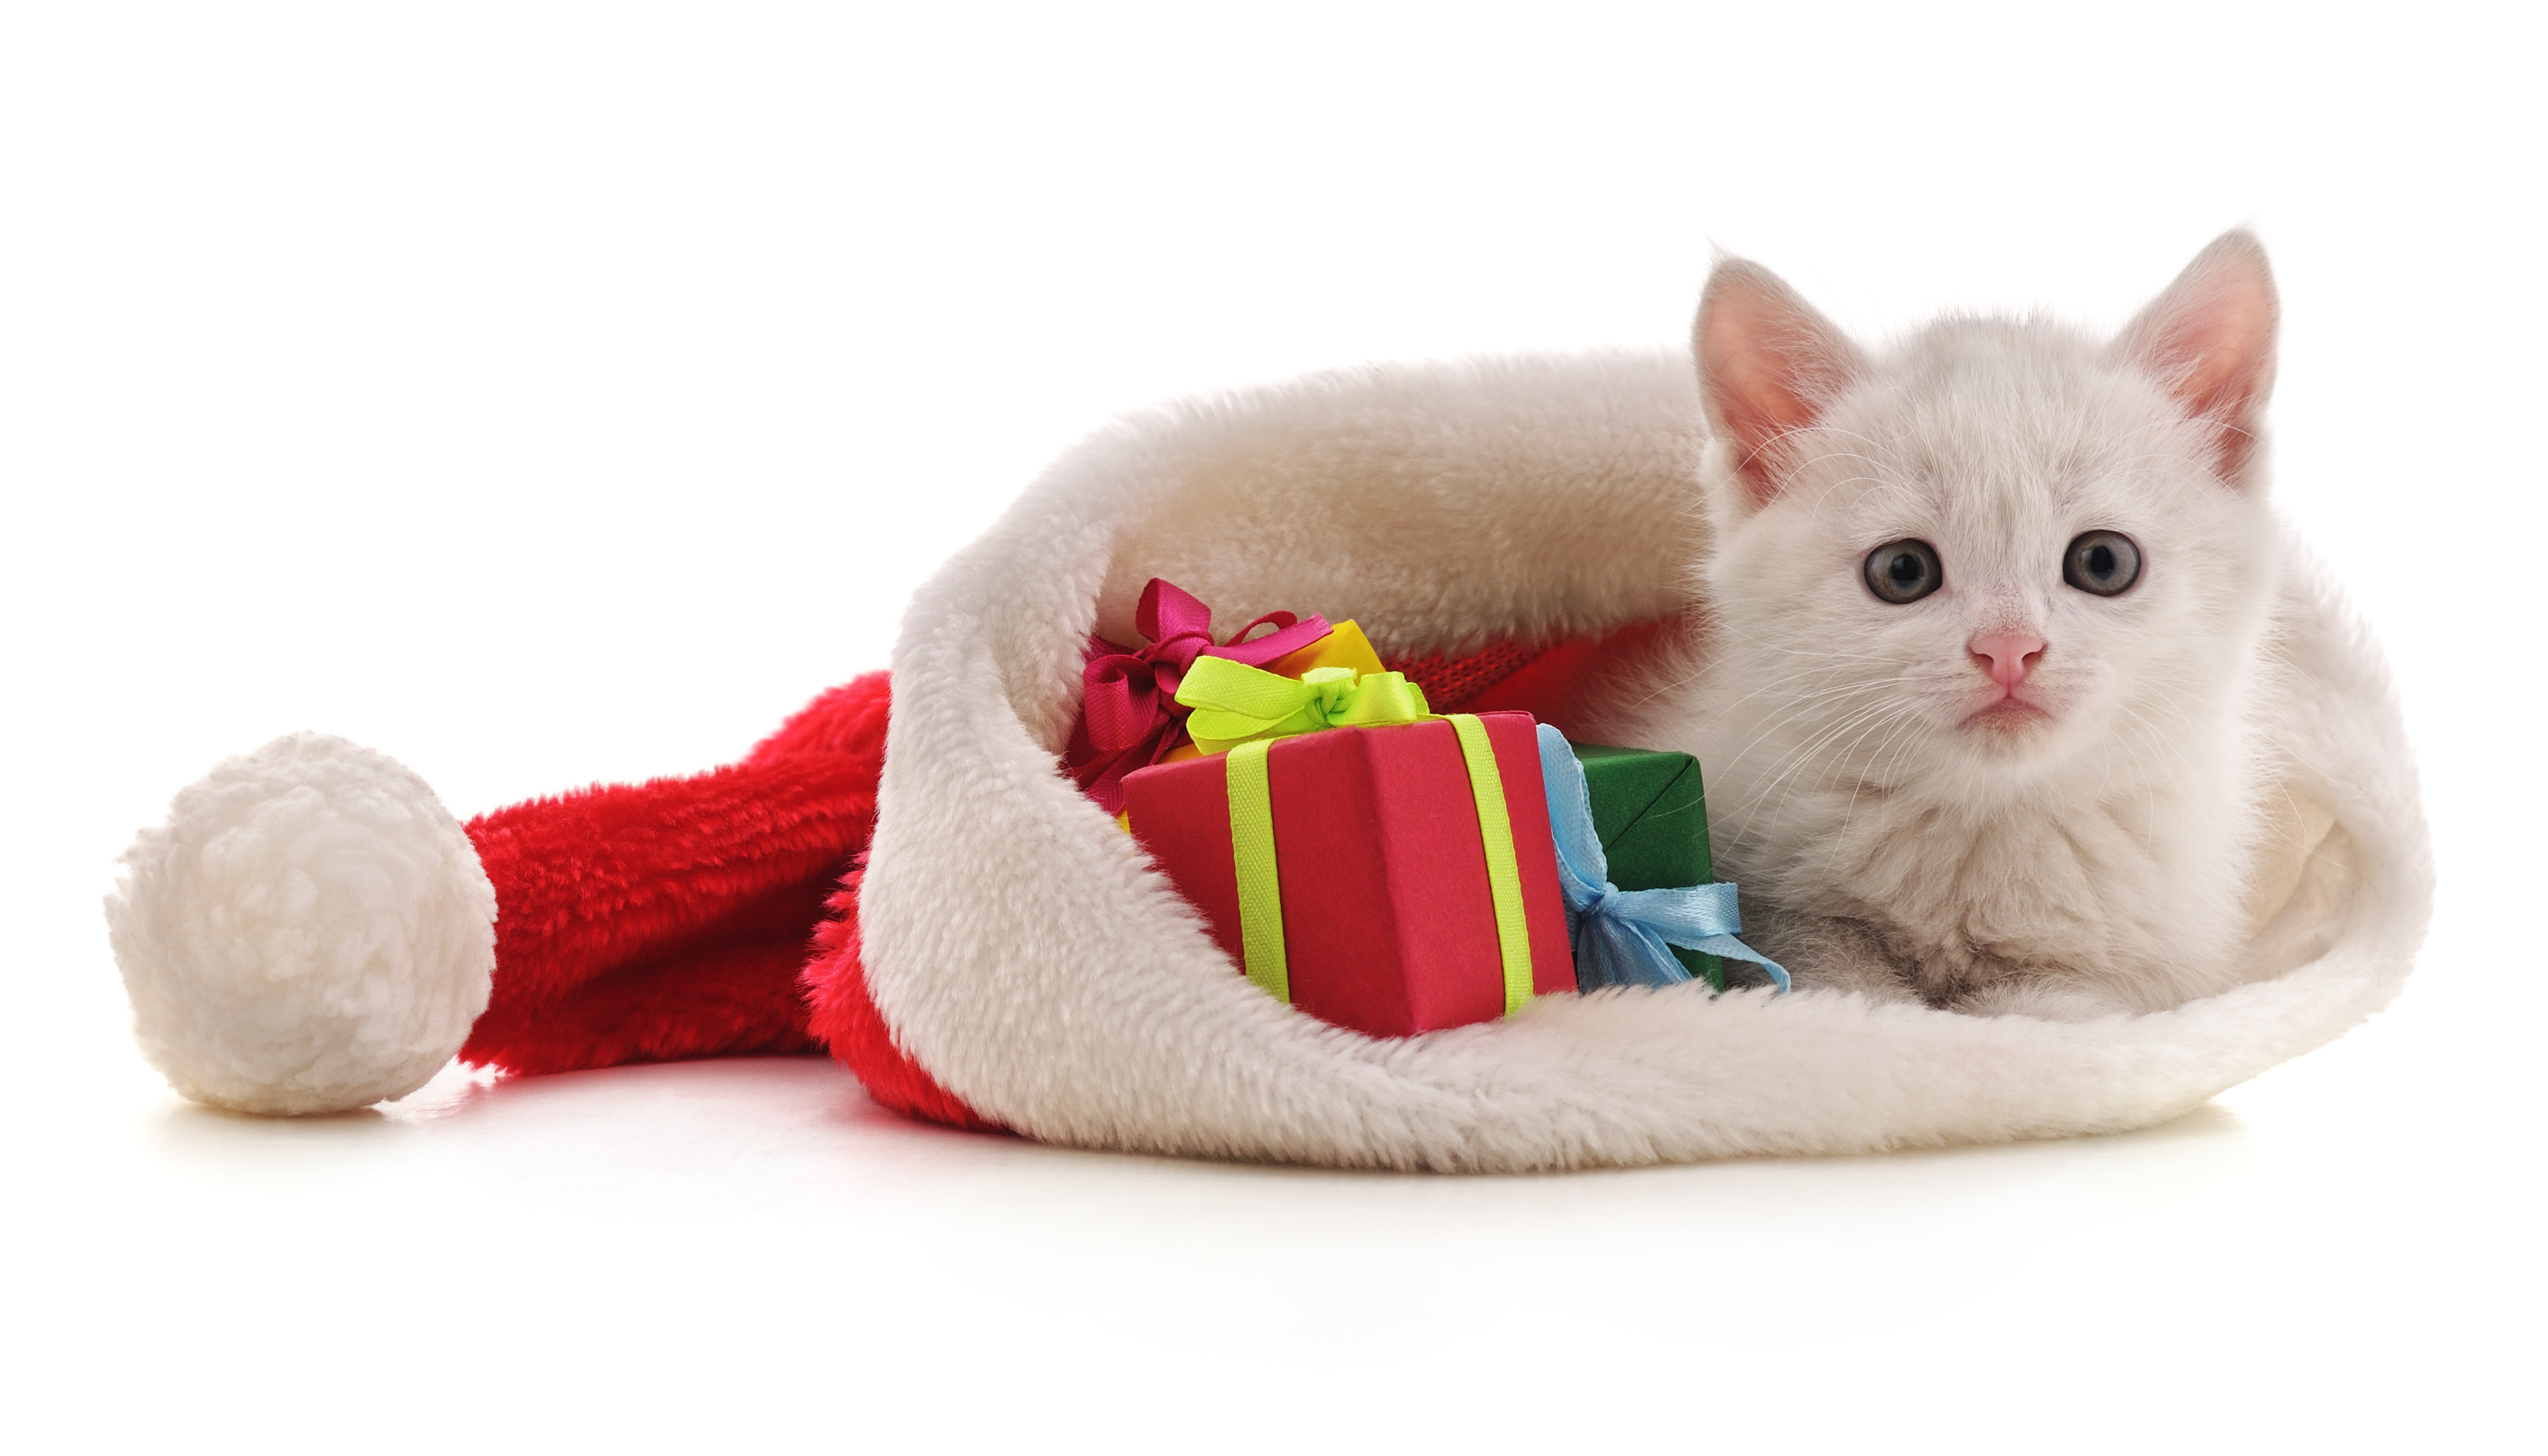 Kitten with Christmas gifts.